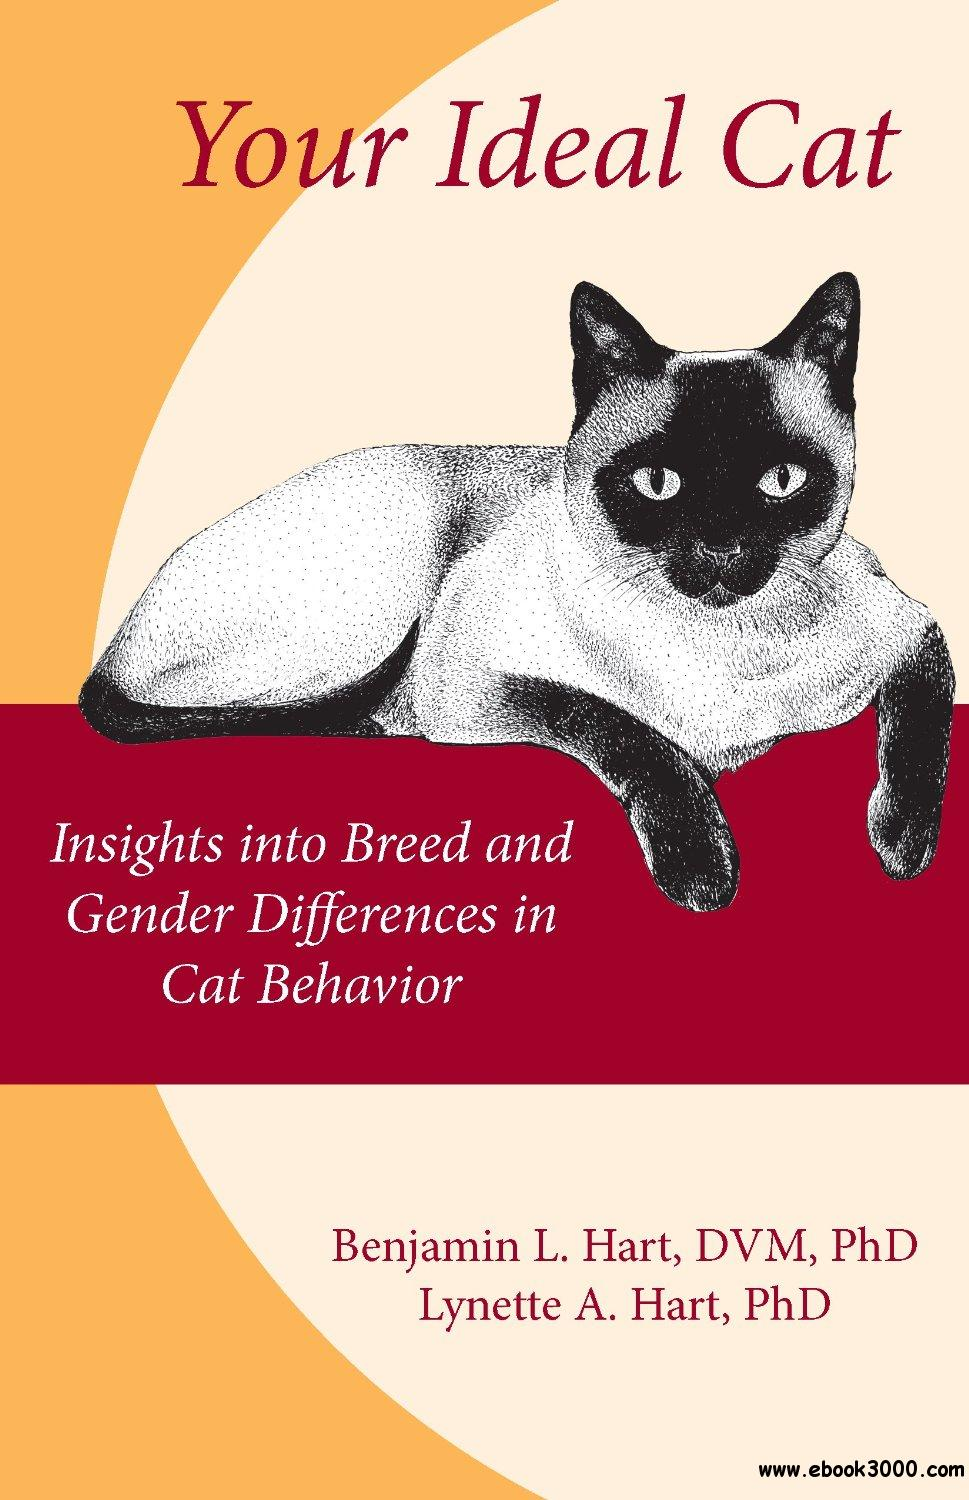 Your Ideal Cat: Insights into Breed and Gender Differences in Cat Behavior download dree